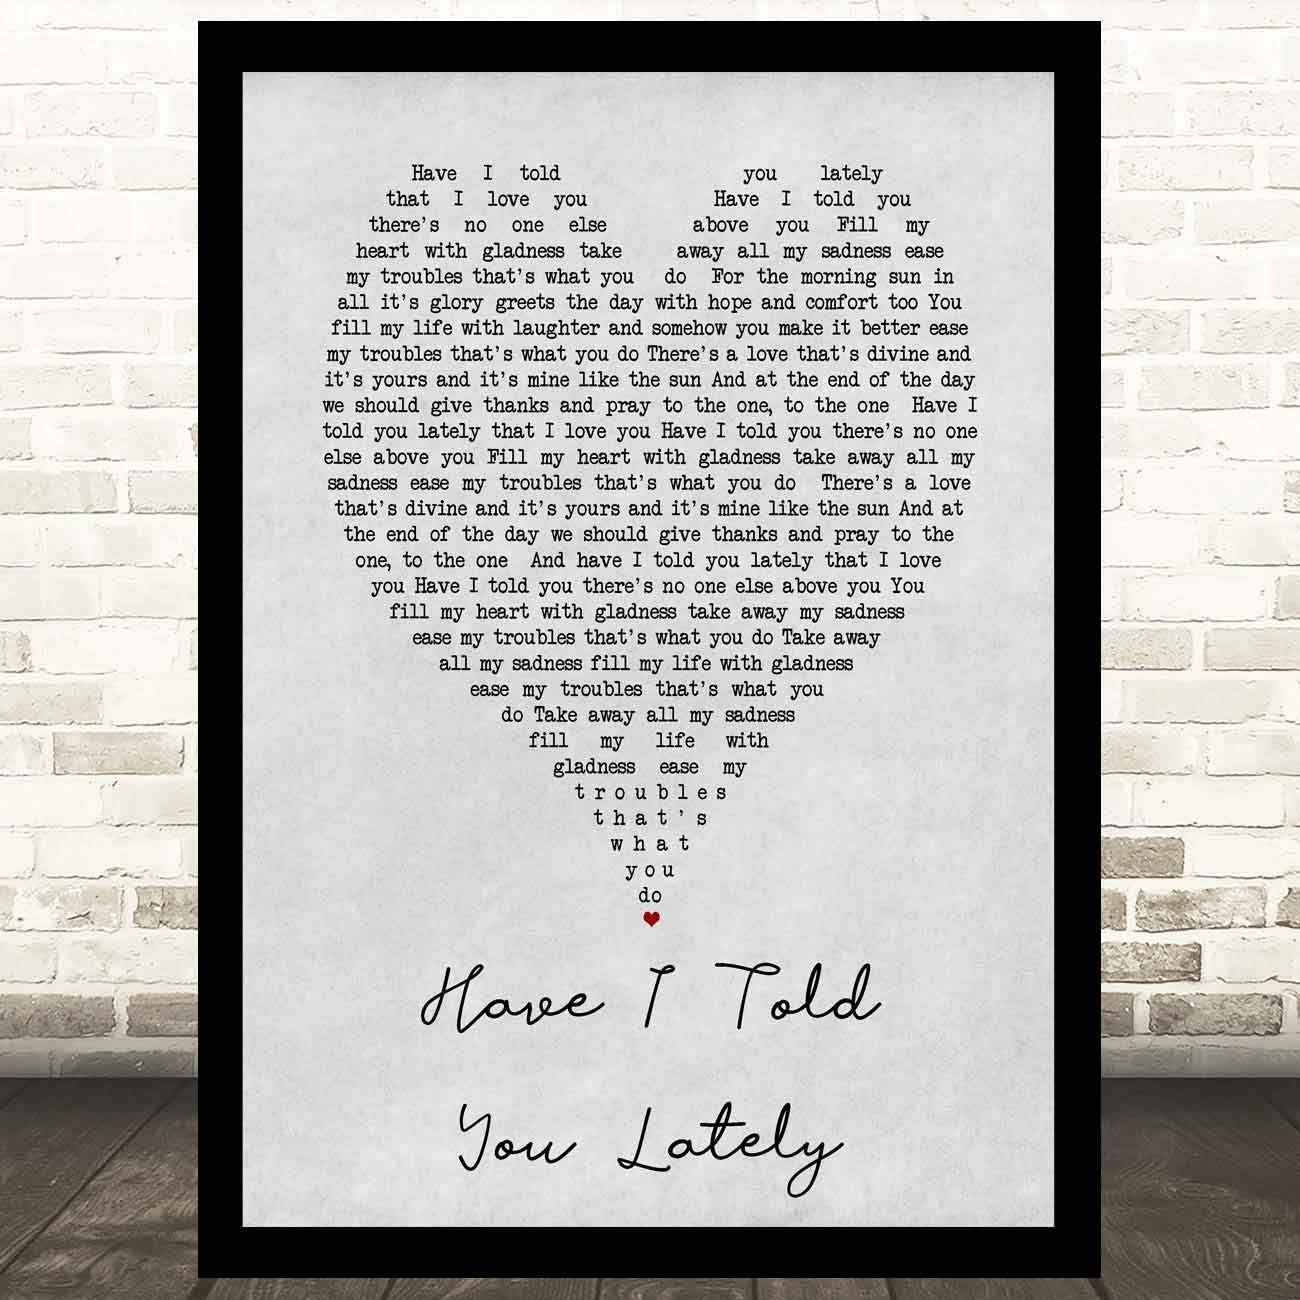 Eayanery Have I Told You Lately Grey Heart Song Inspired Song Lyric Art Print Inspirational Music Quote Poster Home Wall Decor Gift Ideas Framed 18x14 In Amazon Co Uk Kitchen Home